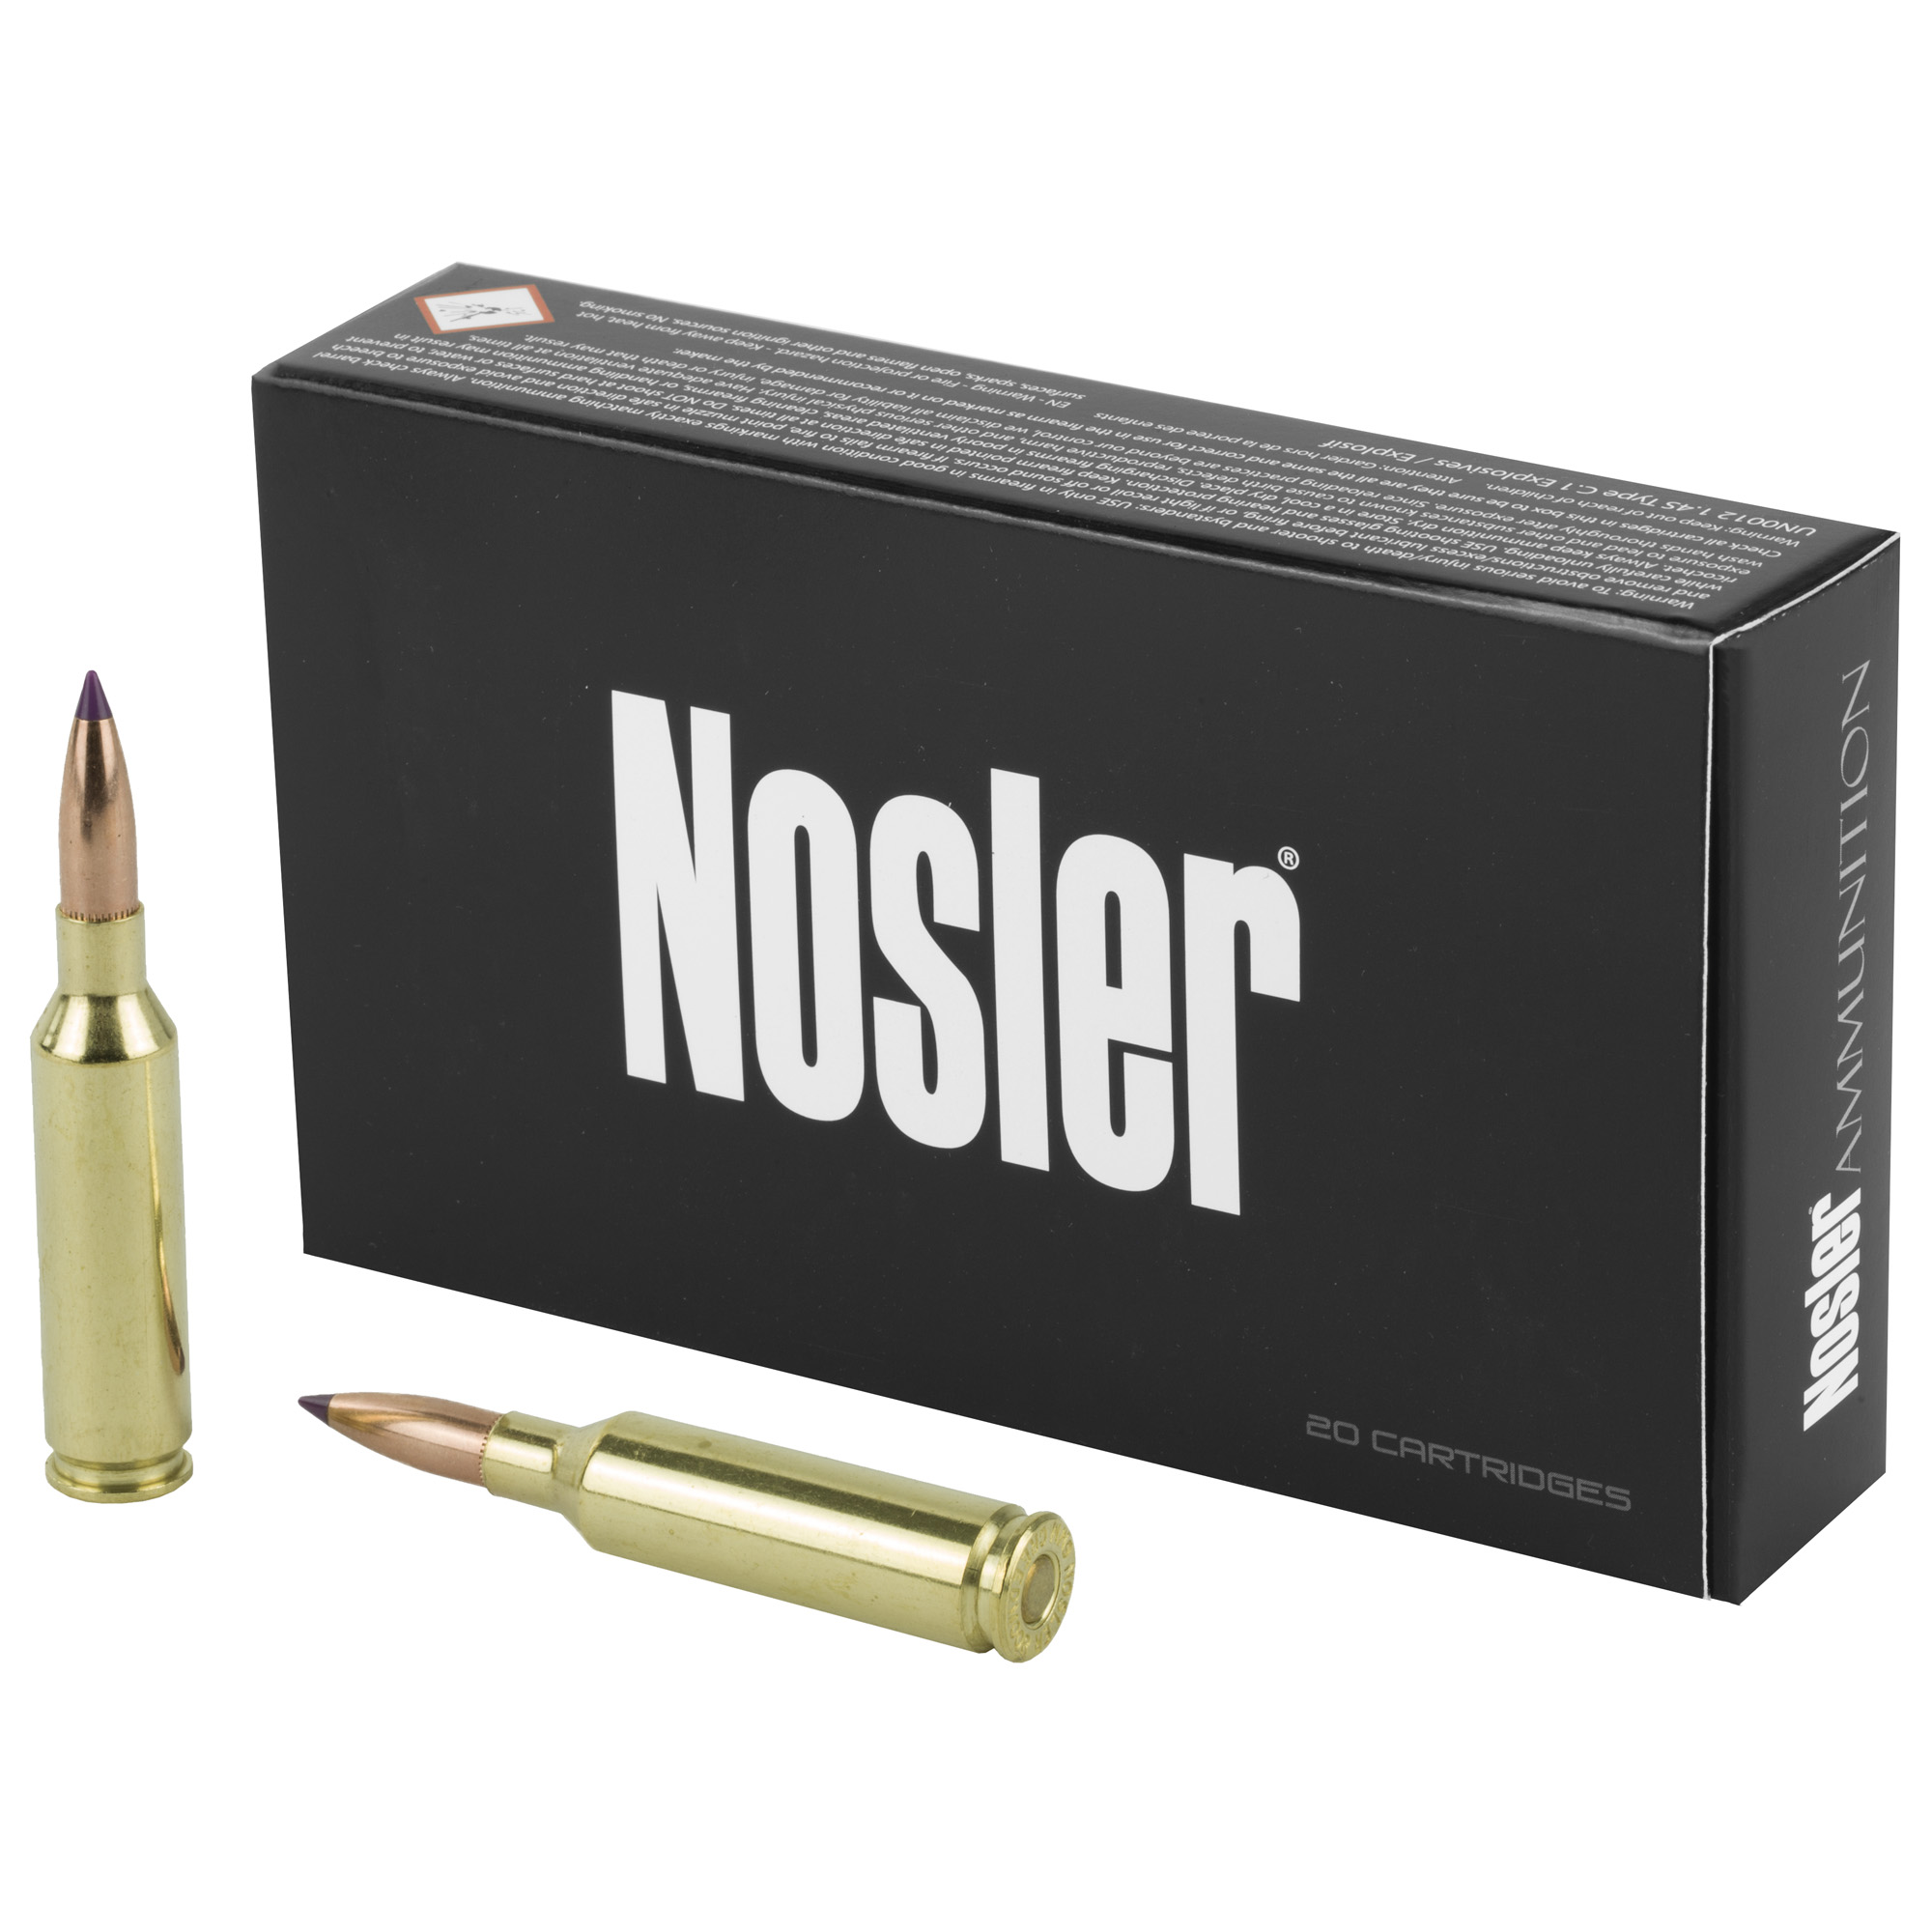 Nosler 6mm Creed 95gr Bt 20/200